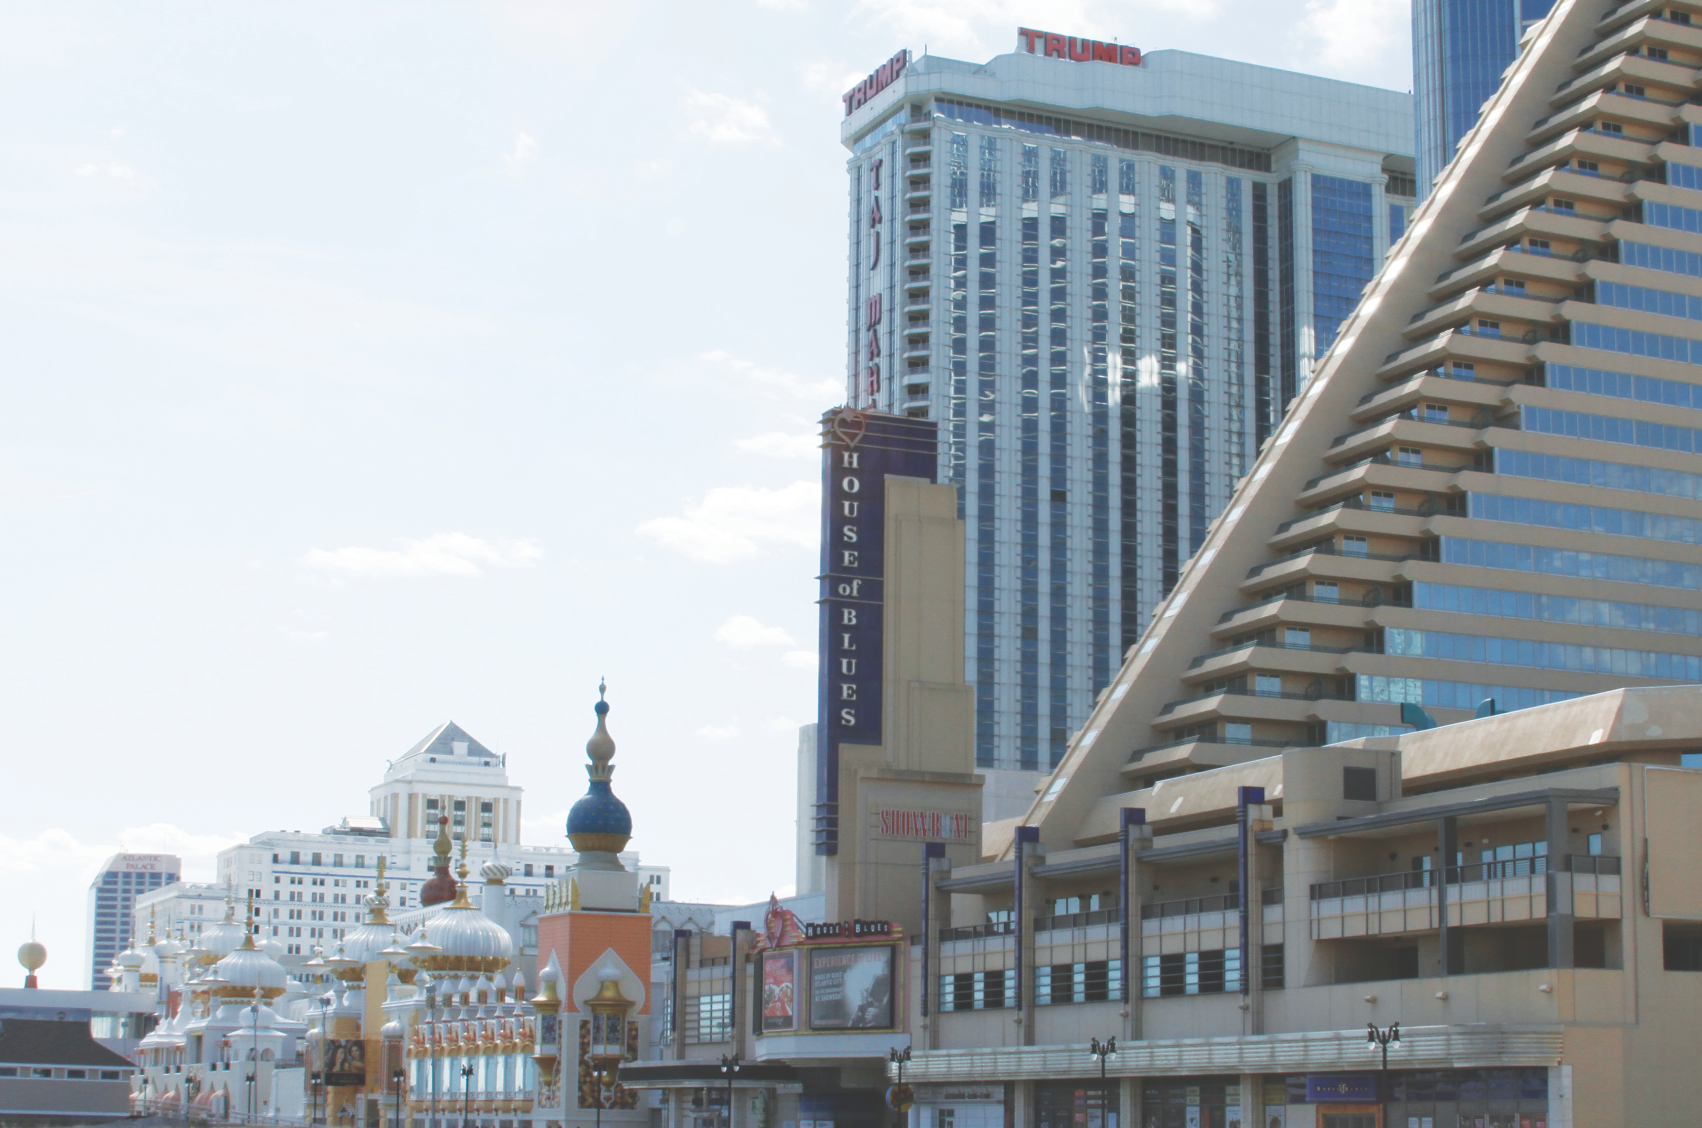 Four major casinos are shuttered in Atlantic City, depressing the local and state economy.